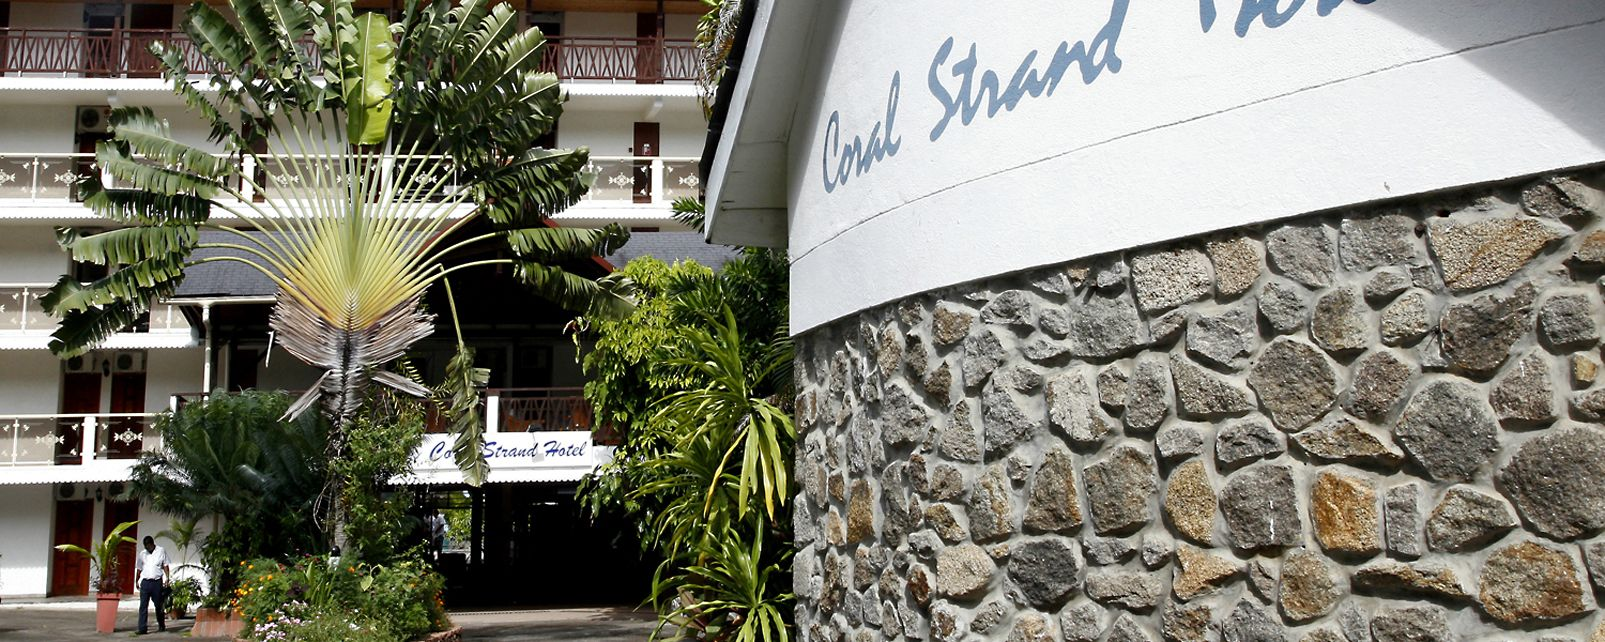 Hôtel Coral Strand Smart Choice